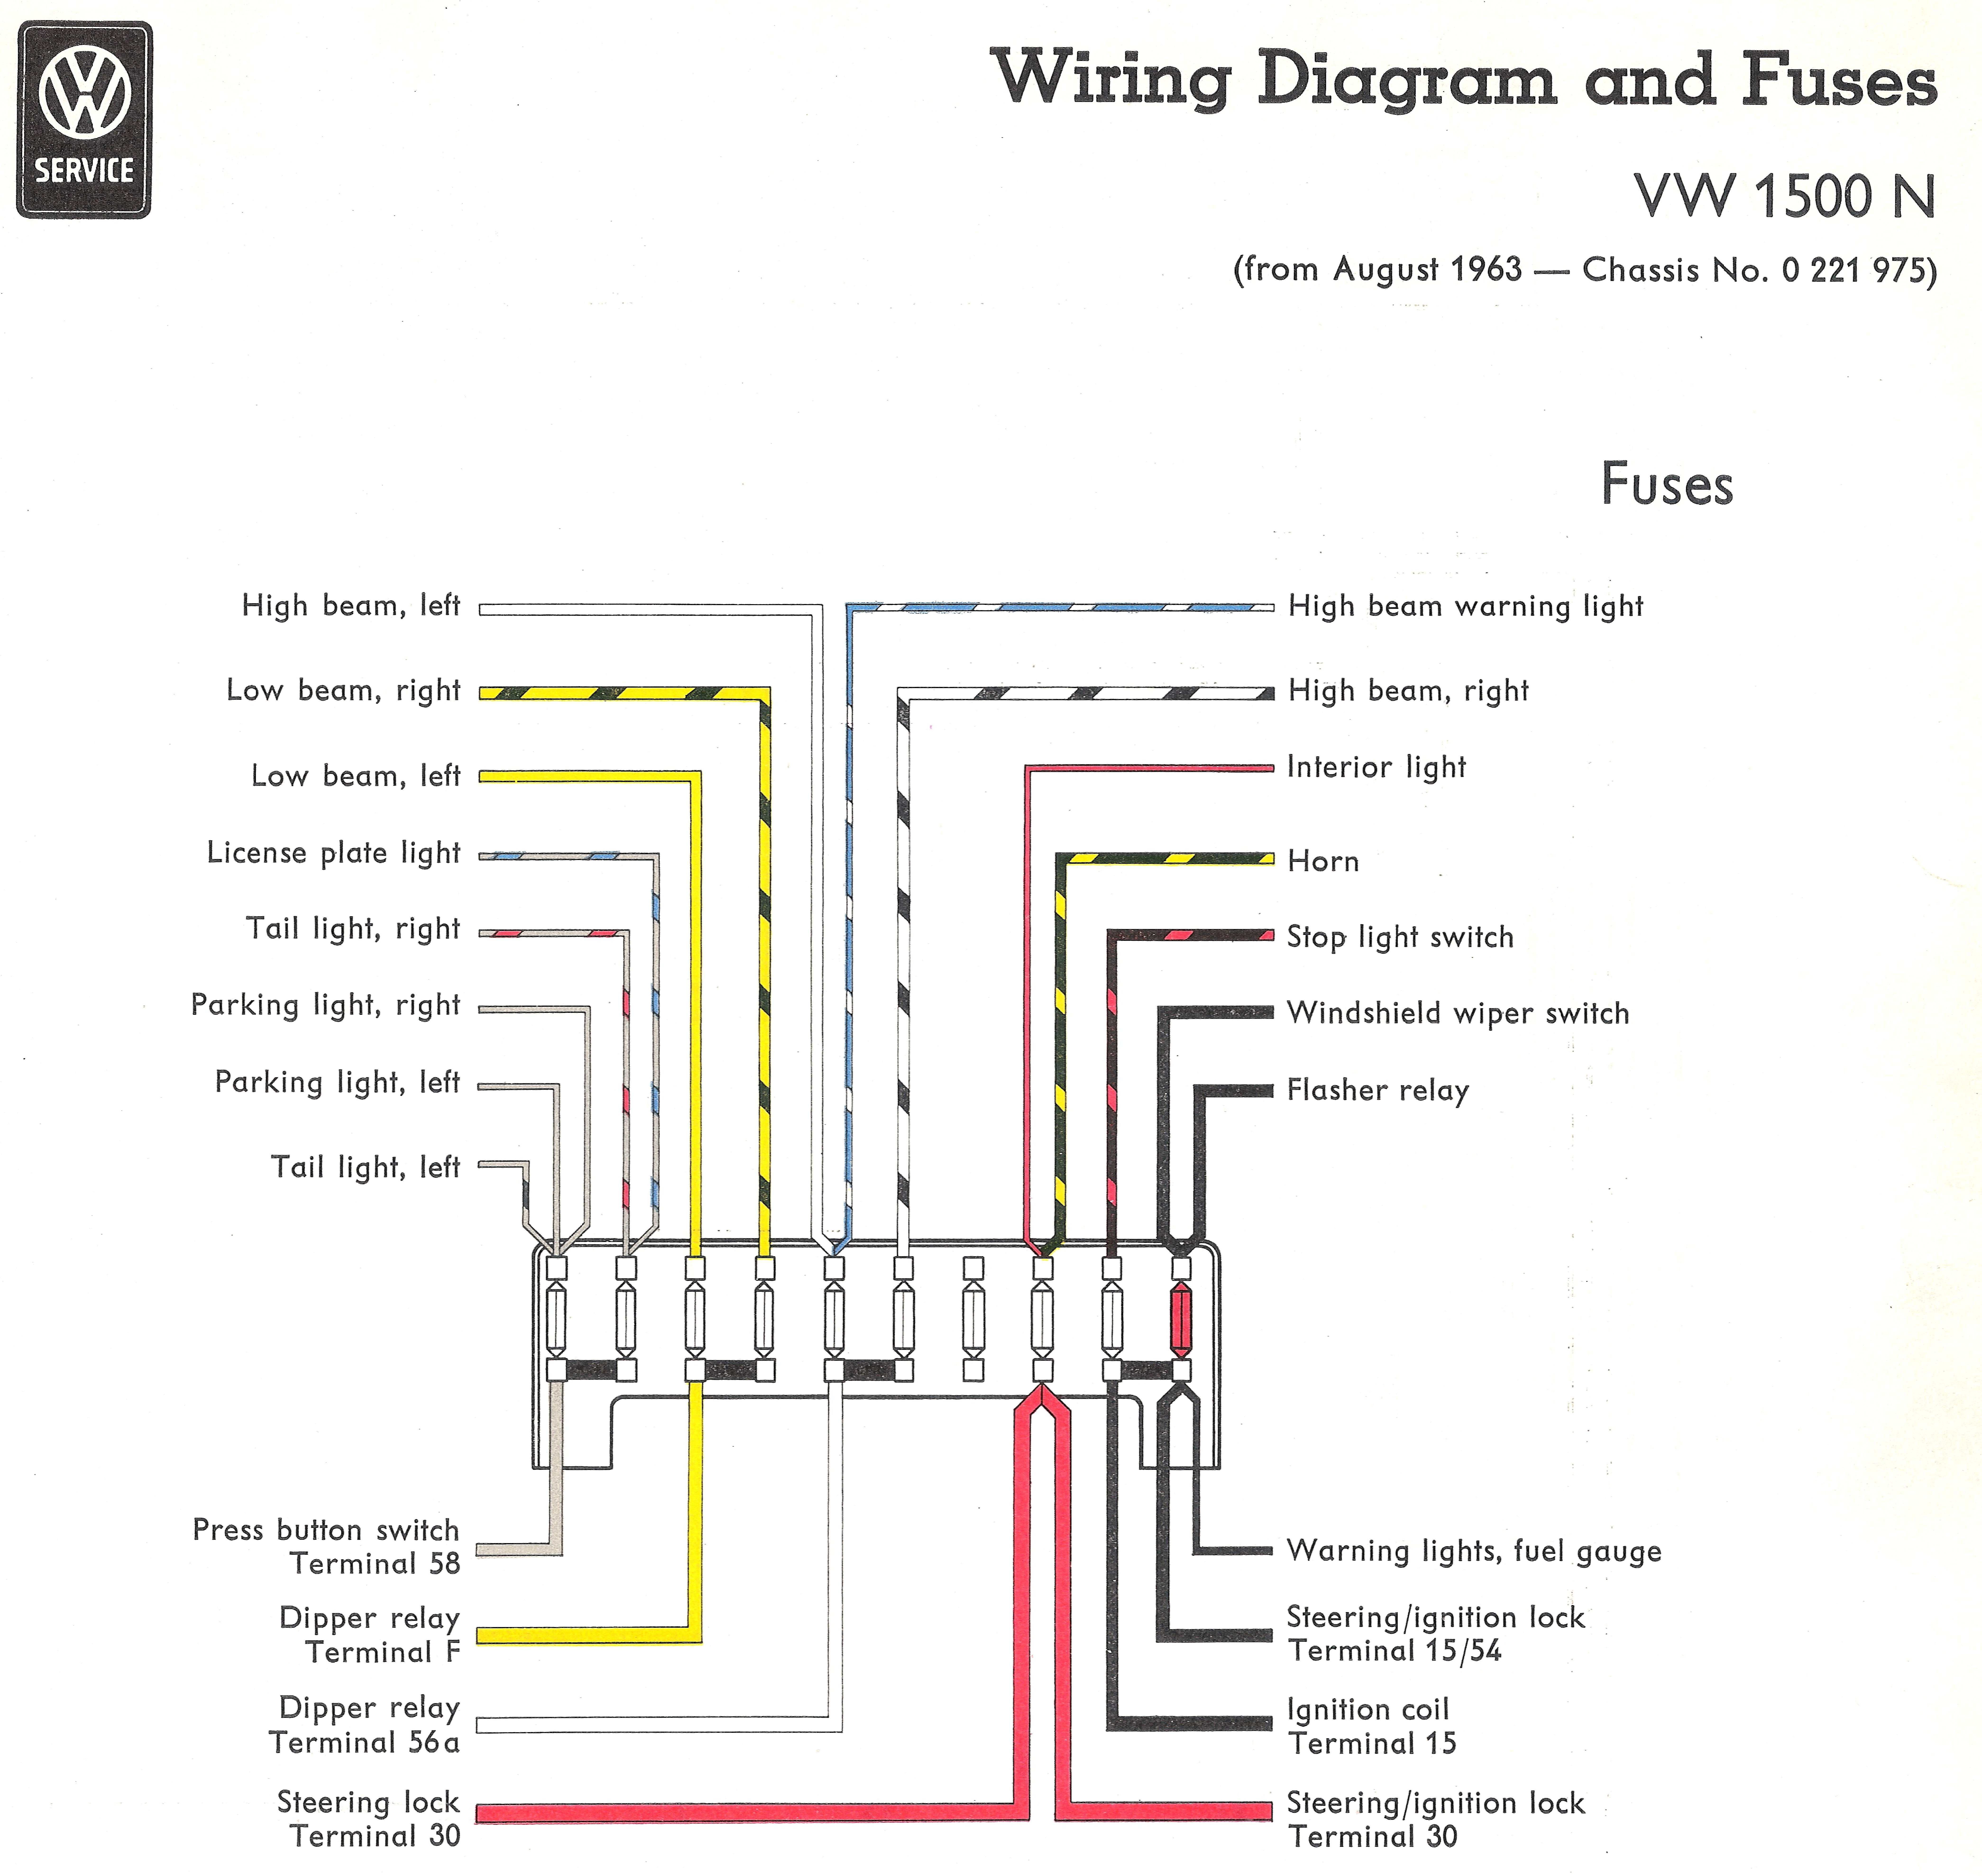 type3_1500n fuse 1200dpi thesamba com type 3 wiring diagrams fuse panel wiring diagram at webbmarketing.co